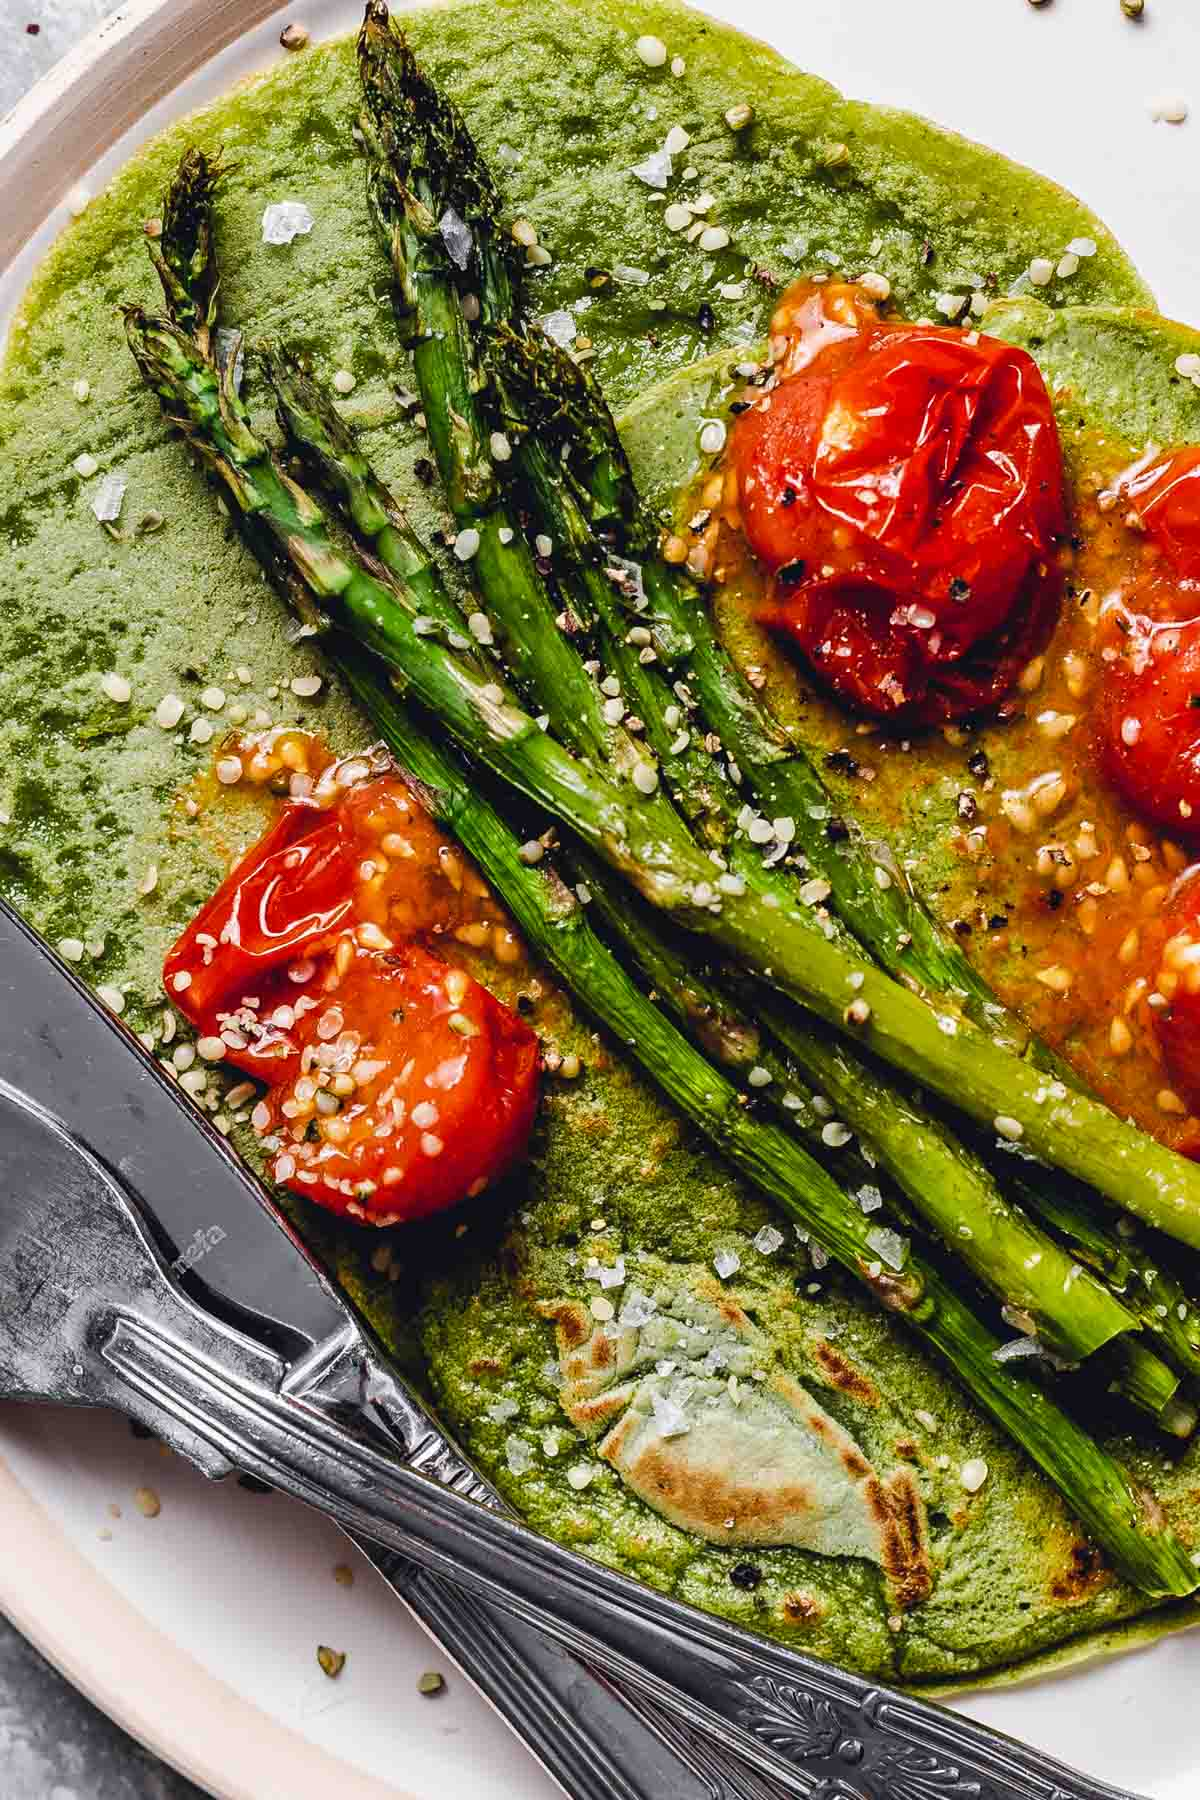 A close-up view of a crepe topped off with tomatoes and asparagus.